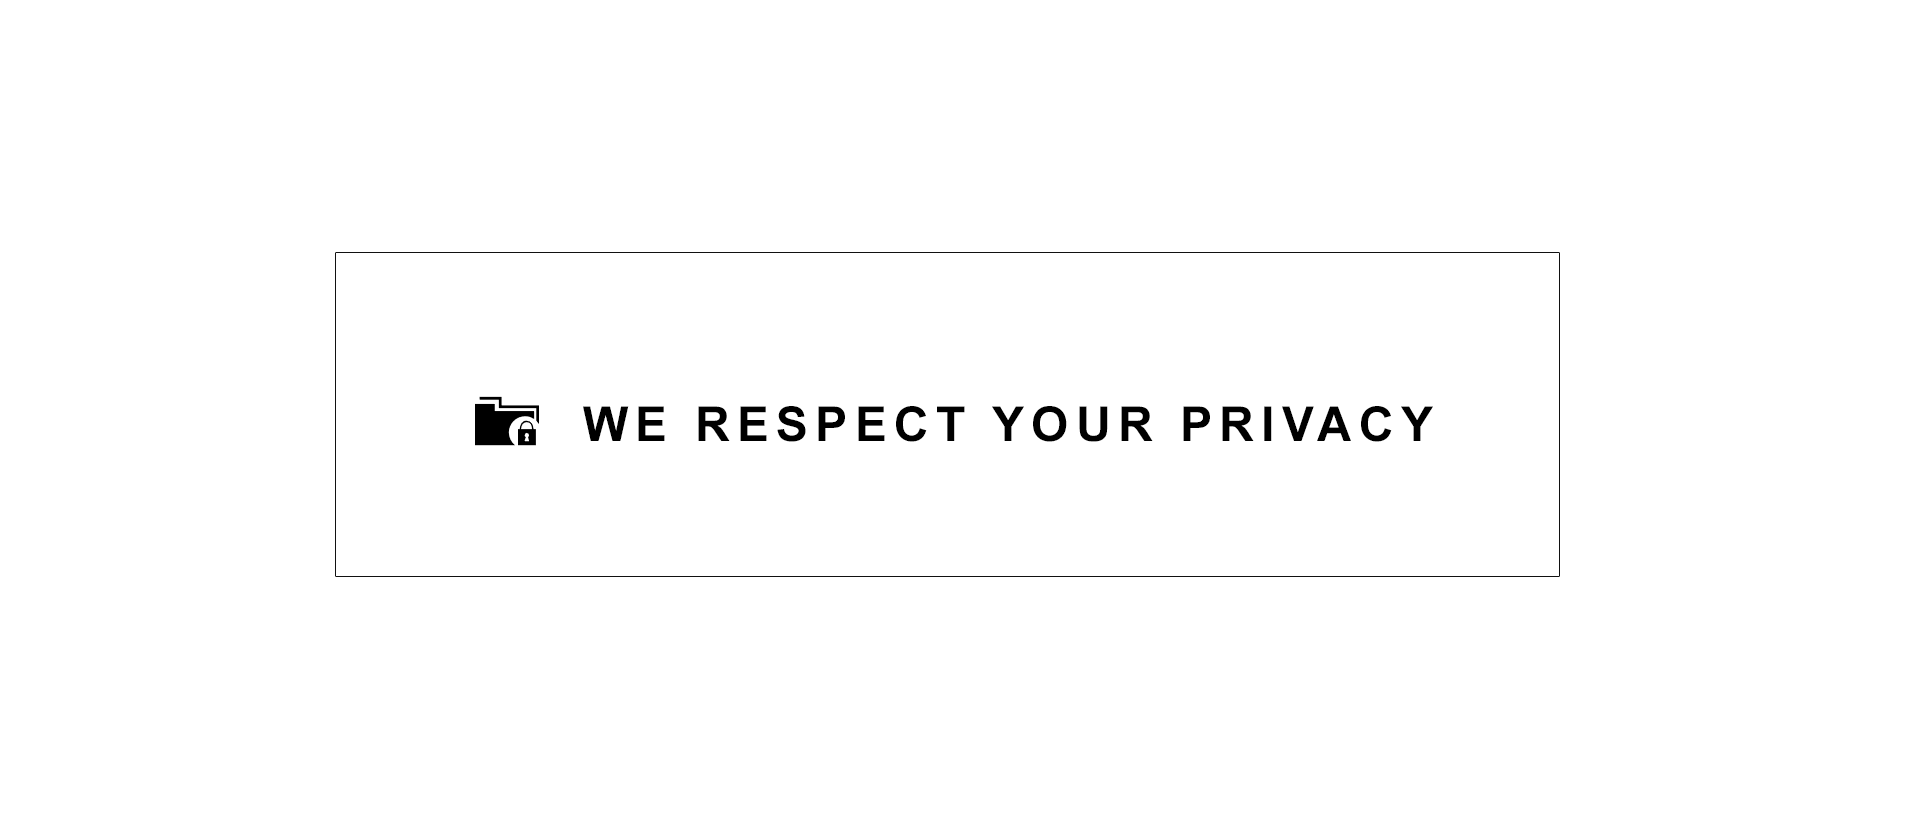 Privacy policy sign